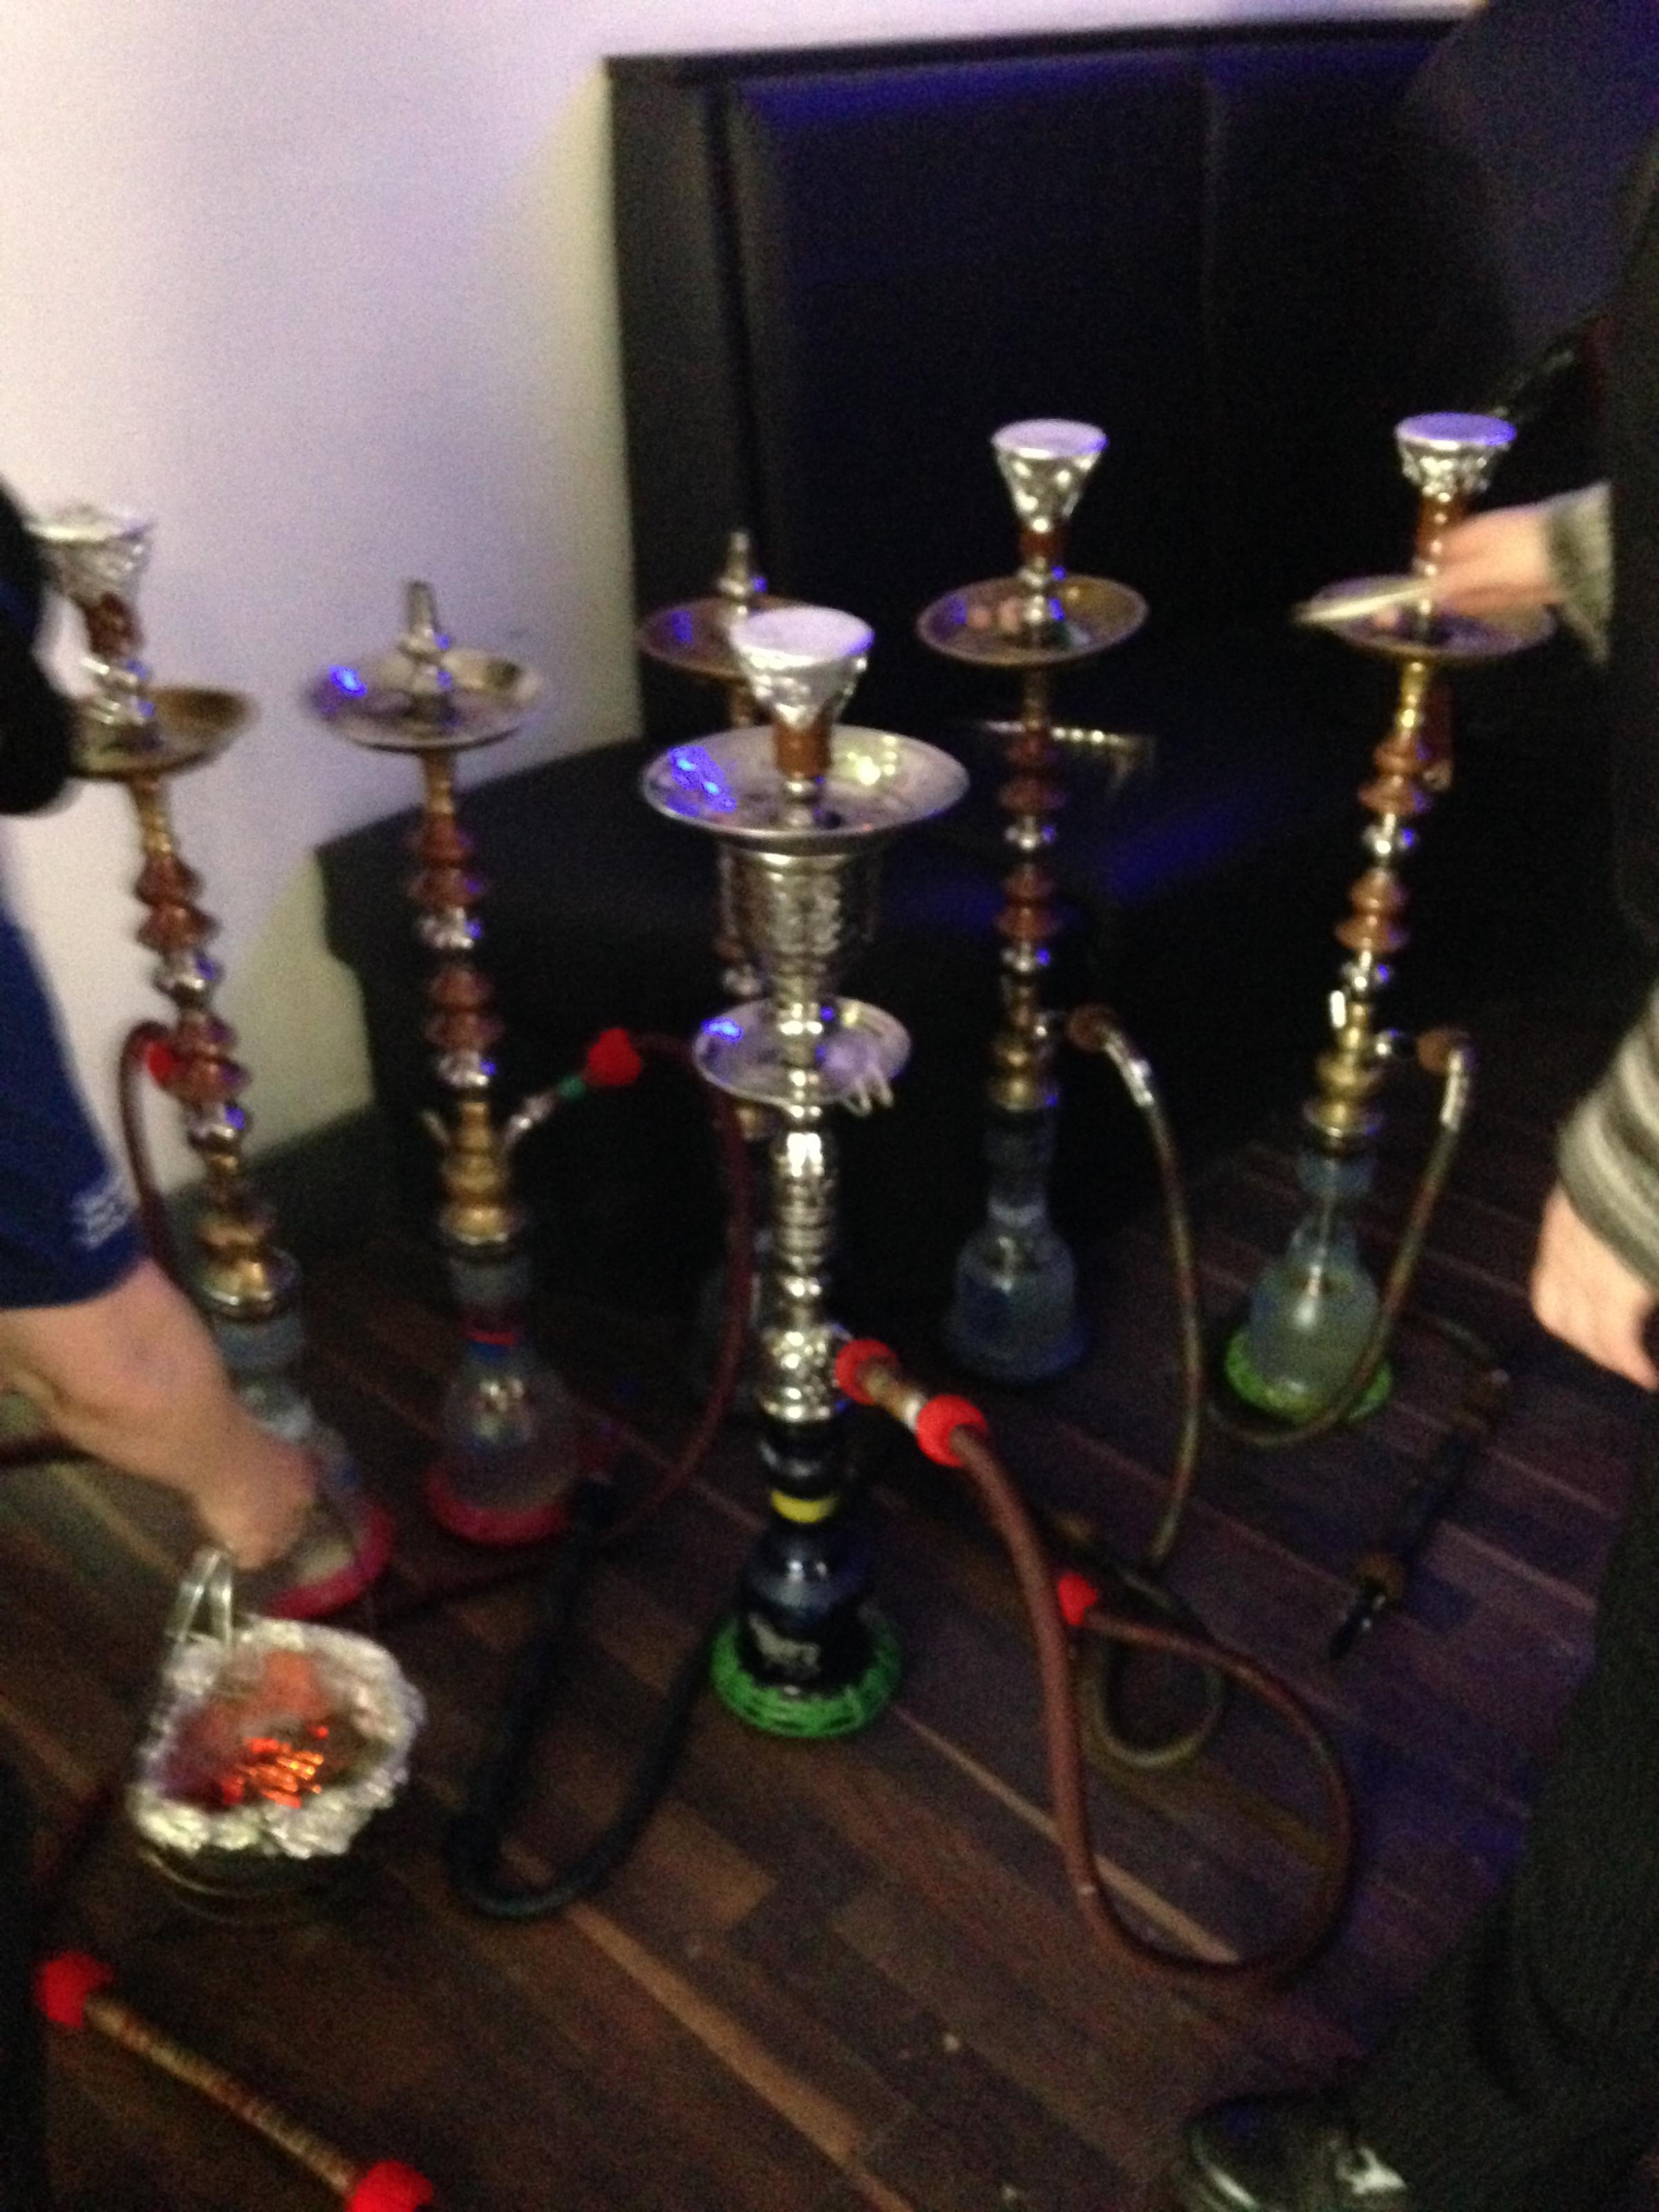 UPDATED: Shisha bar cleared out after police raid